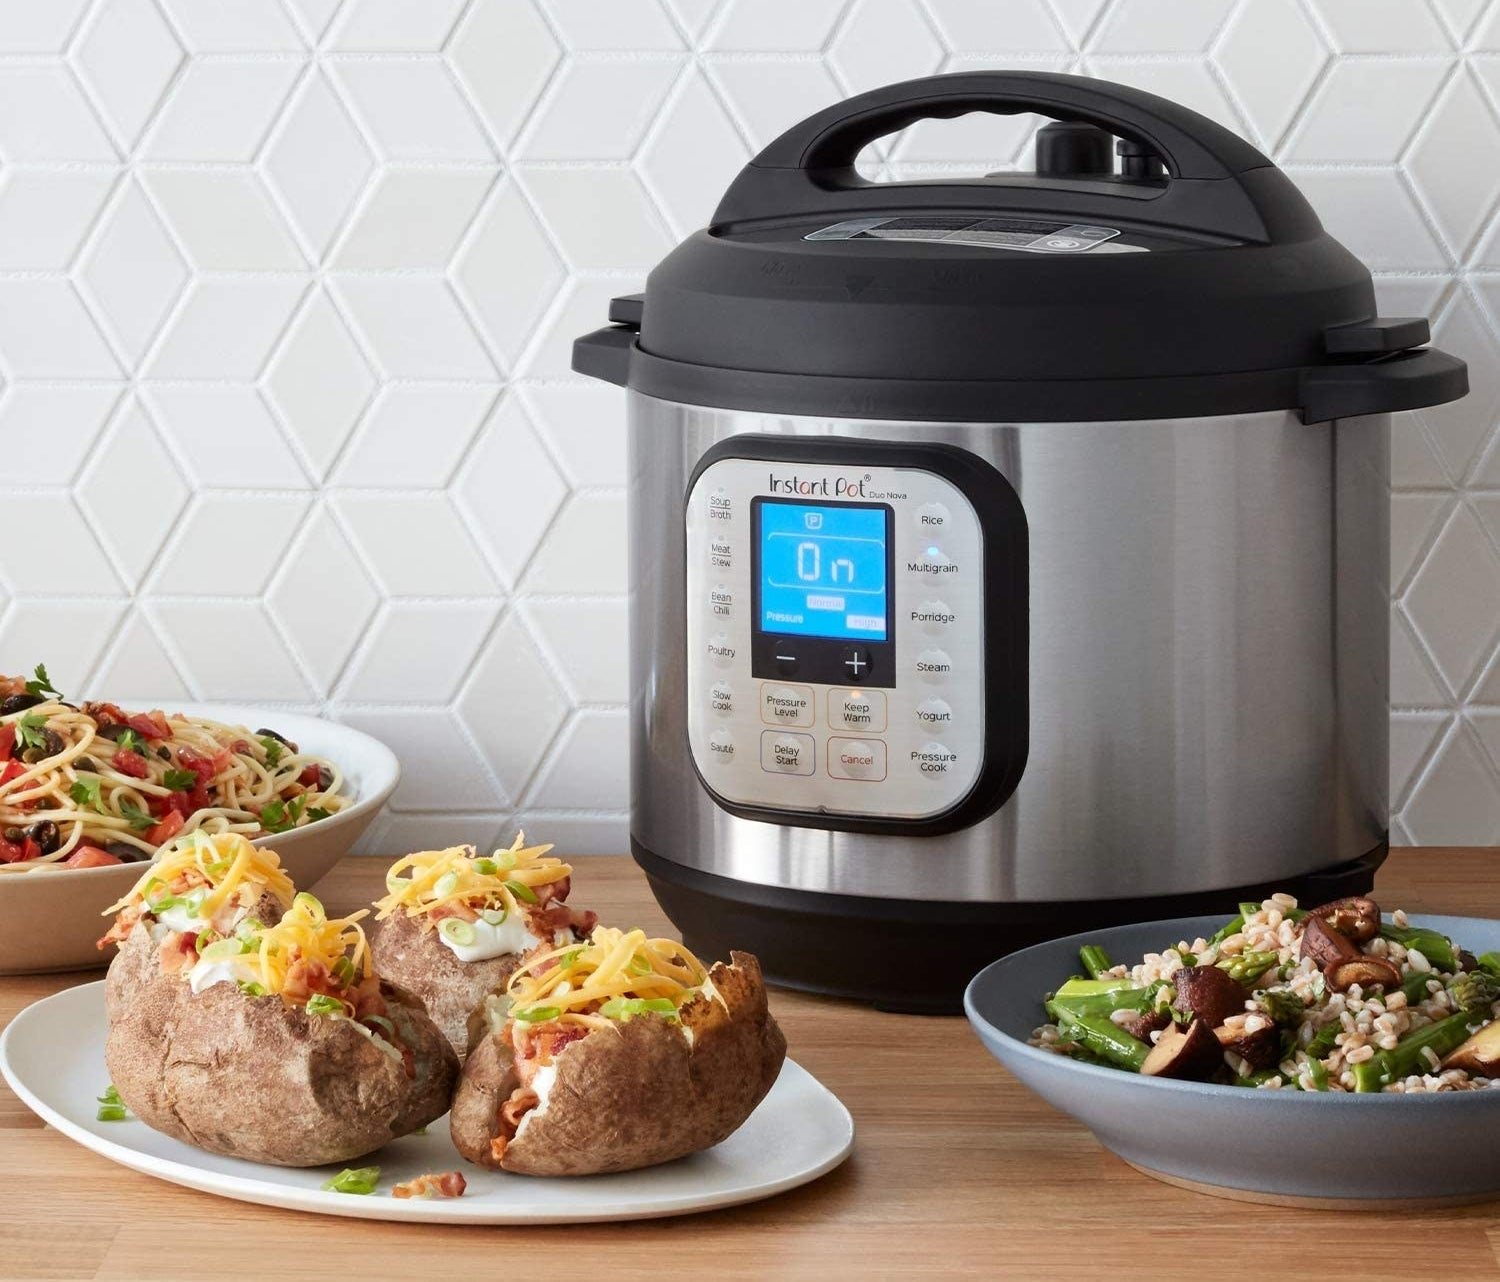 Instant pot surrounded by a pasta dish, baked potatoes, and a green beans and rice dish